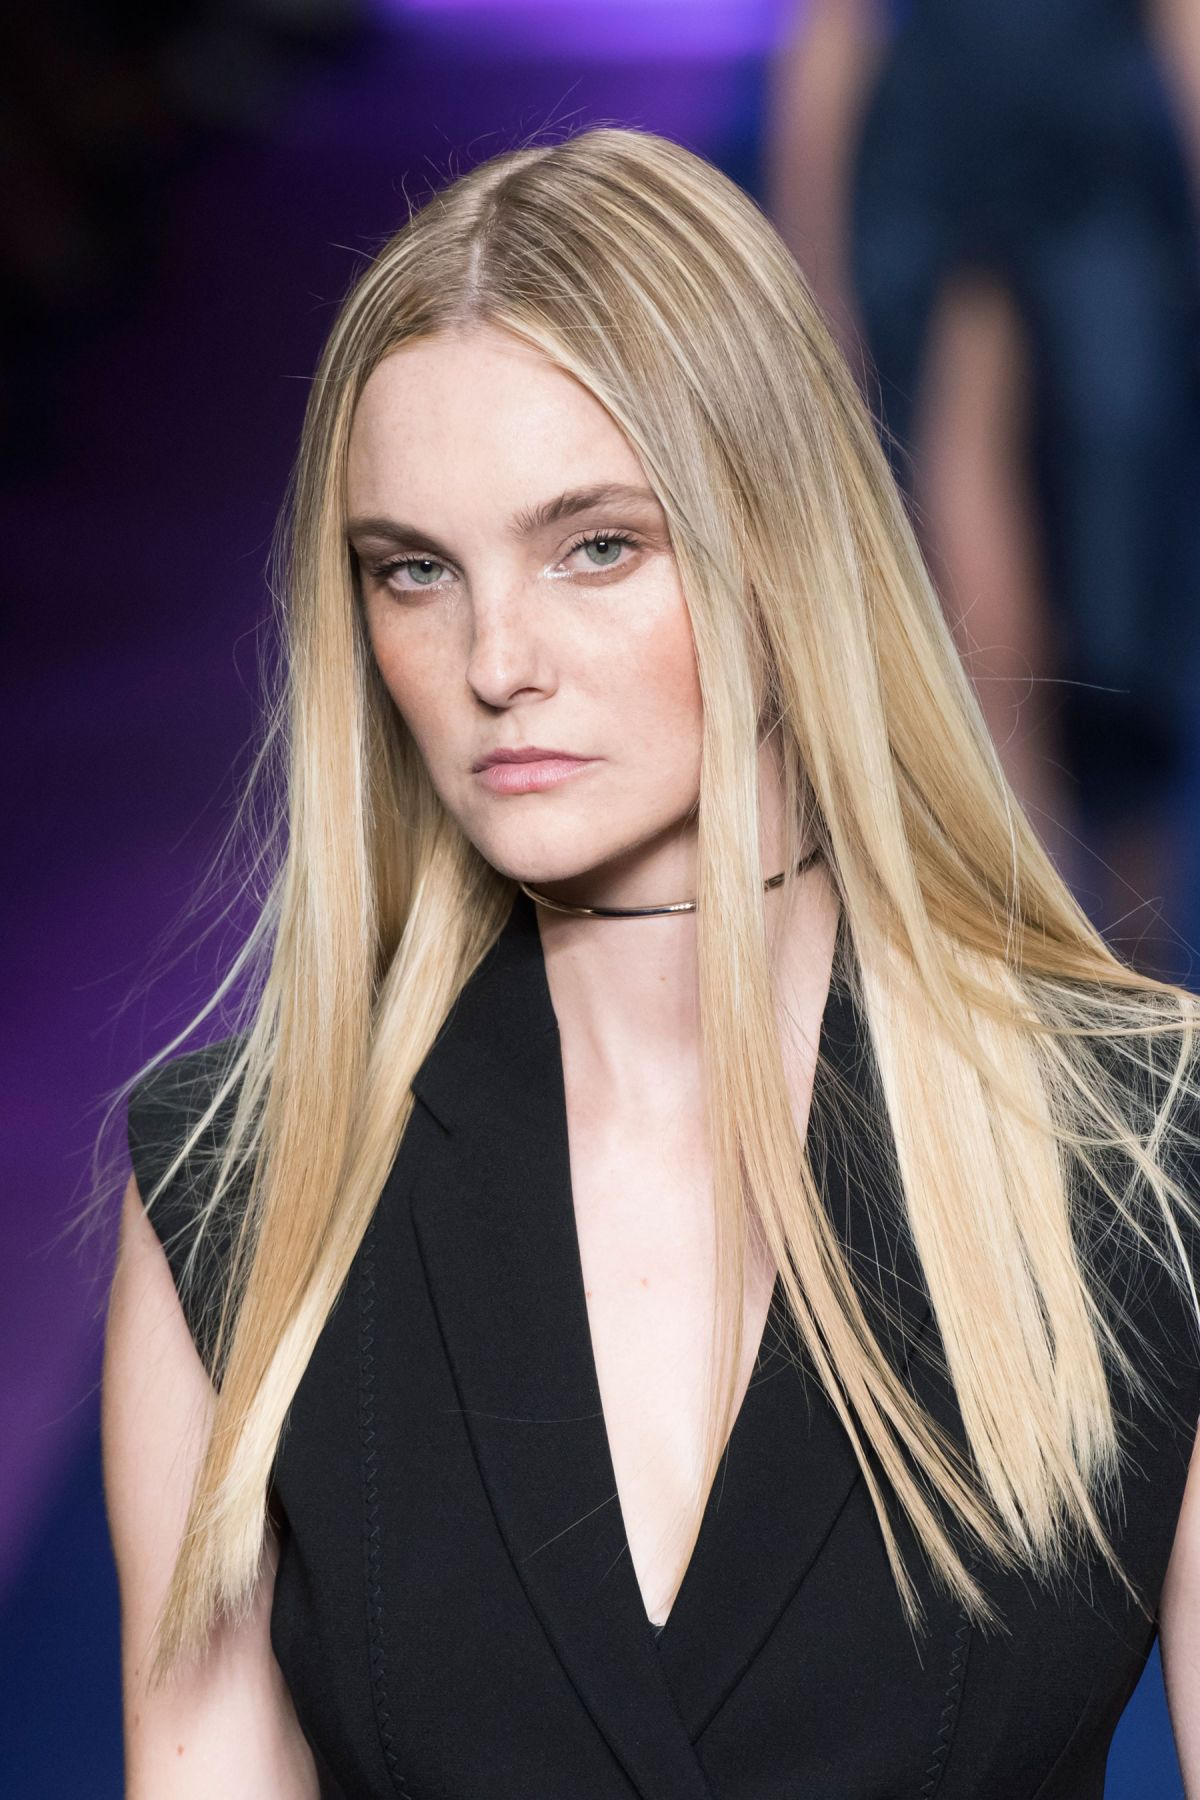 CAROLINE TRENTINI at Versace Spring/Summer 2017 Fashion Show at Milan Fashion Week